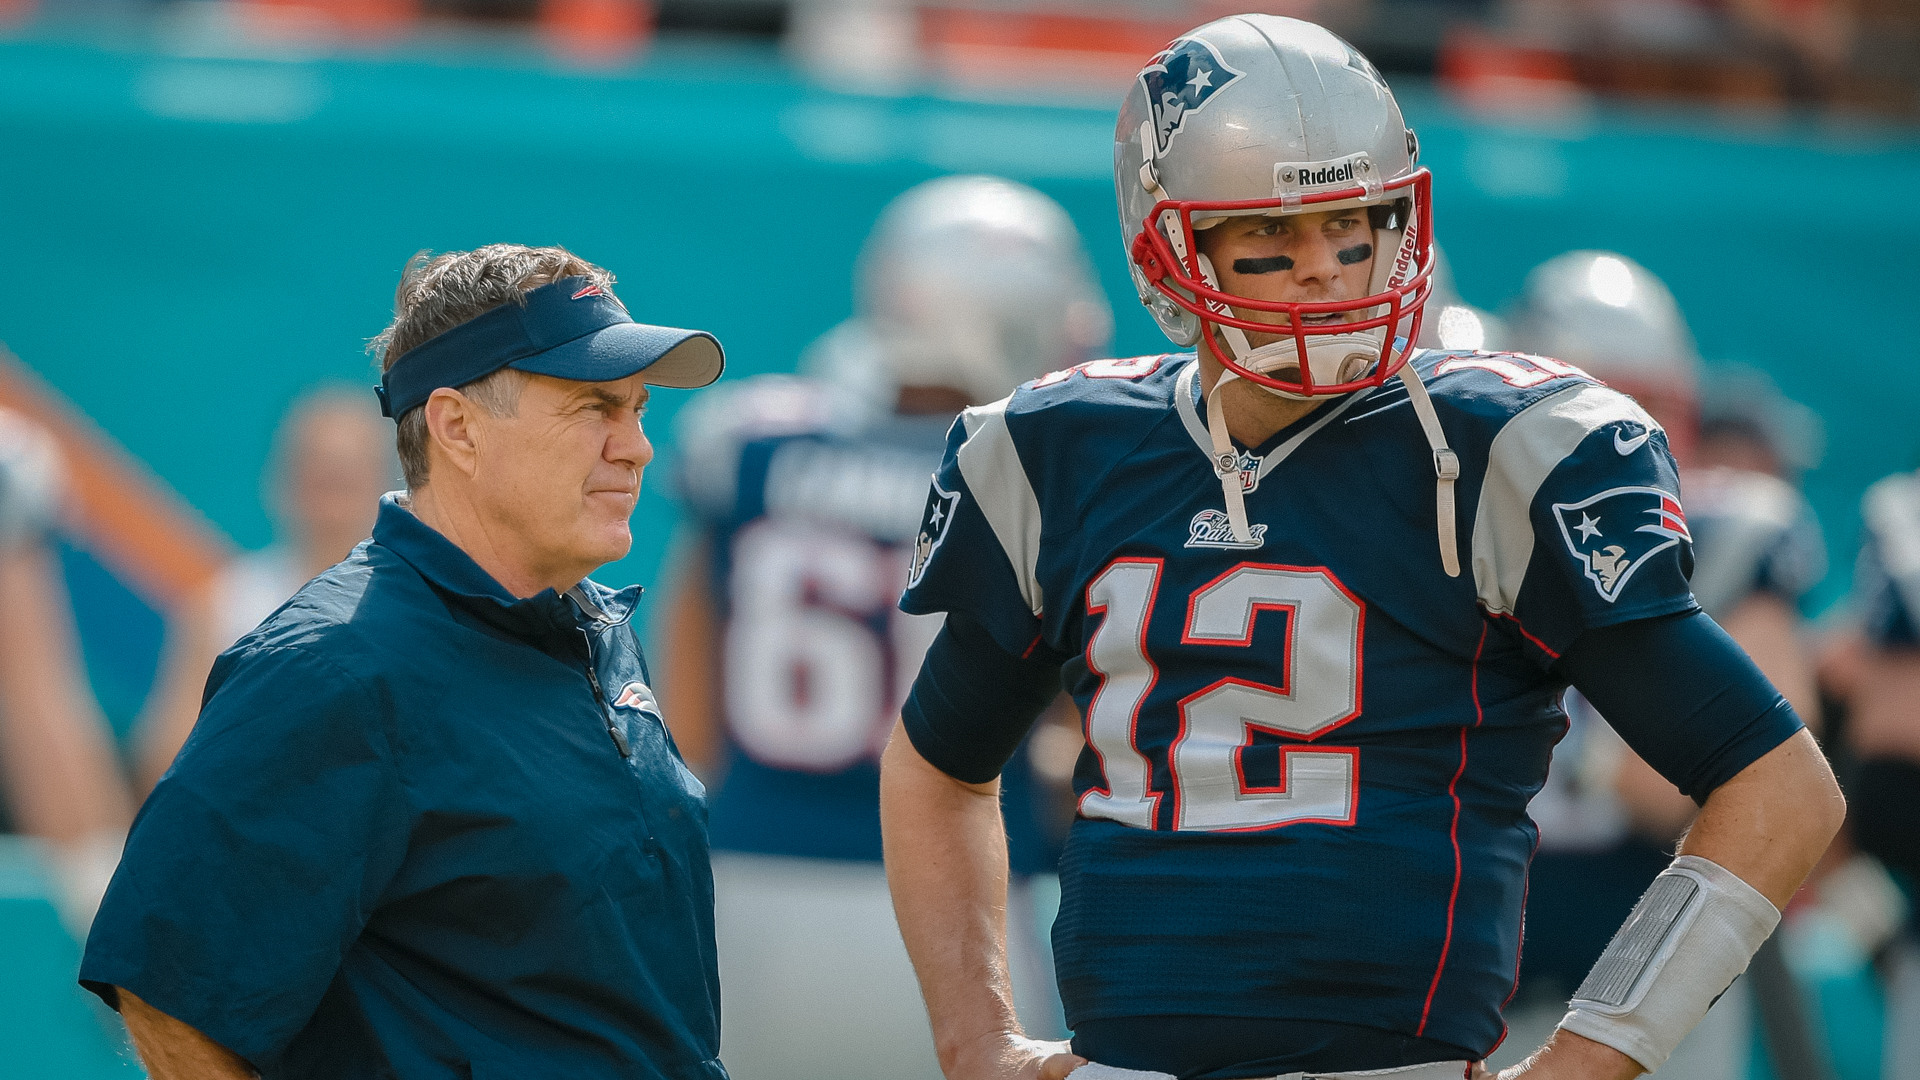 The Most Successful Coach and Quarterback Combos of All Time